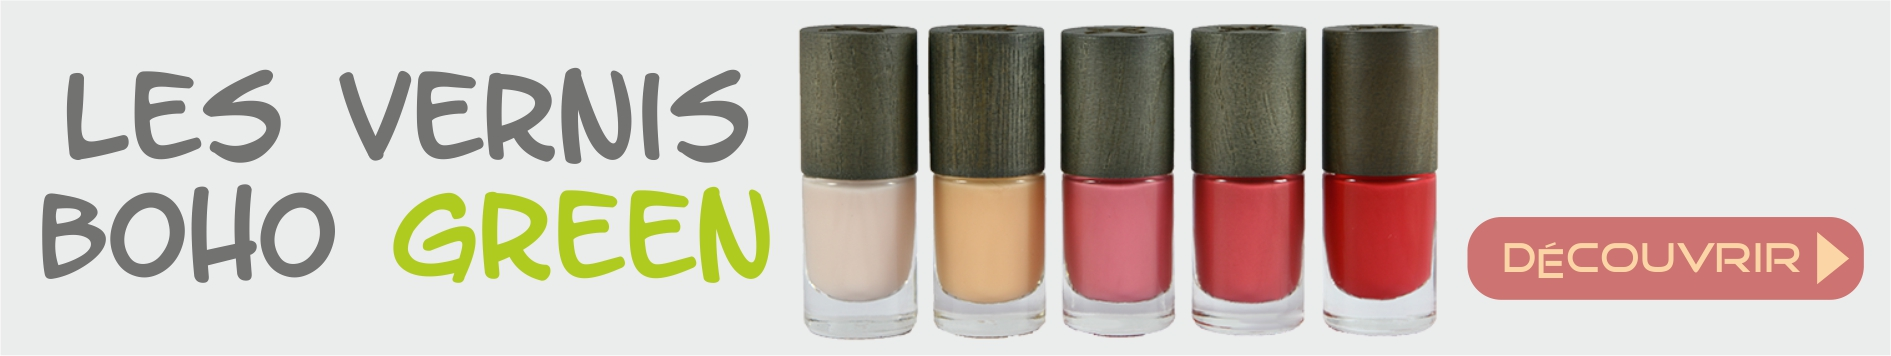 Les vernis à ongles Green Make-up